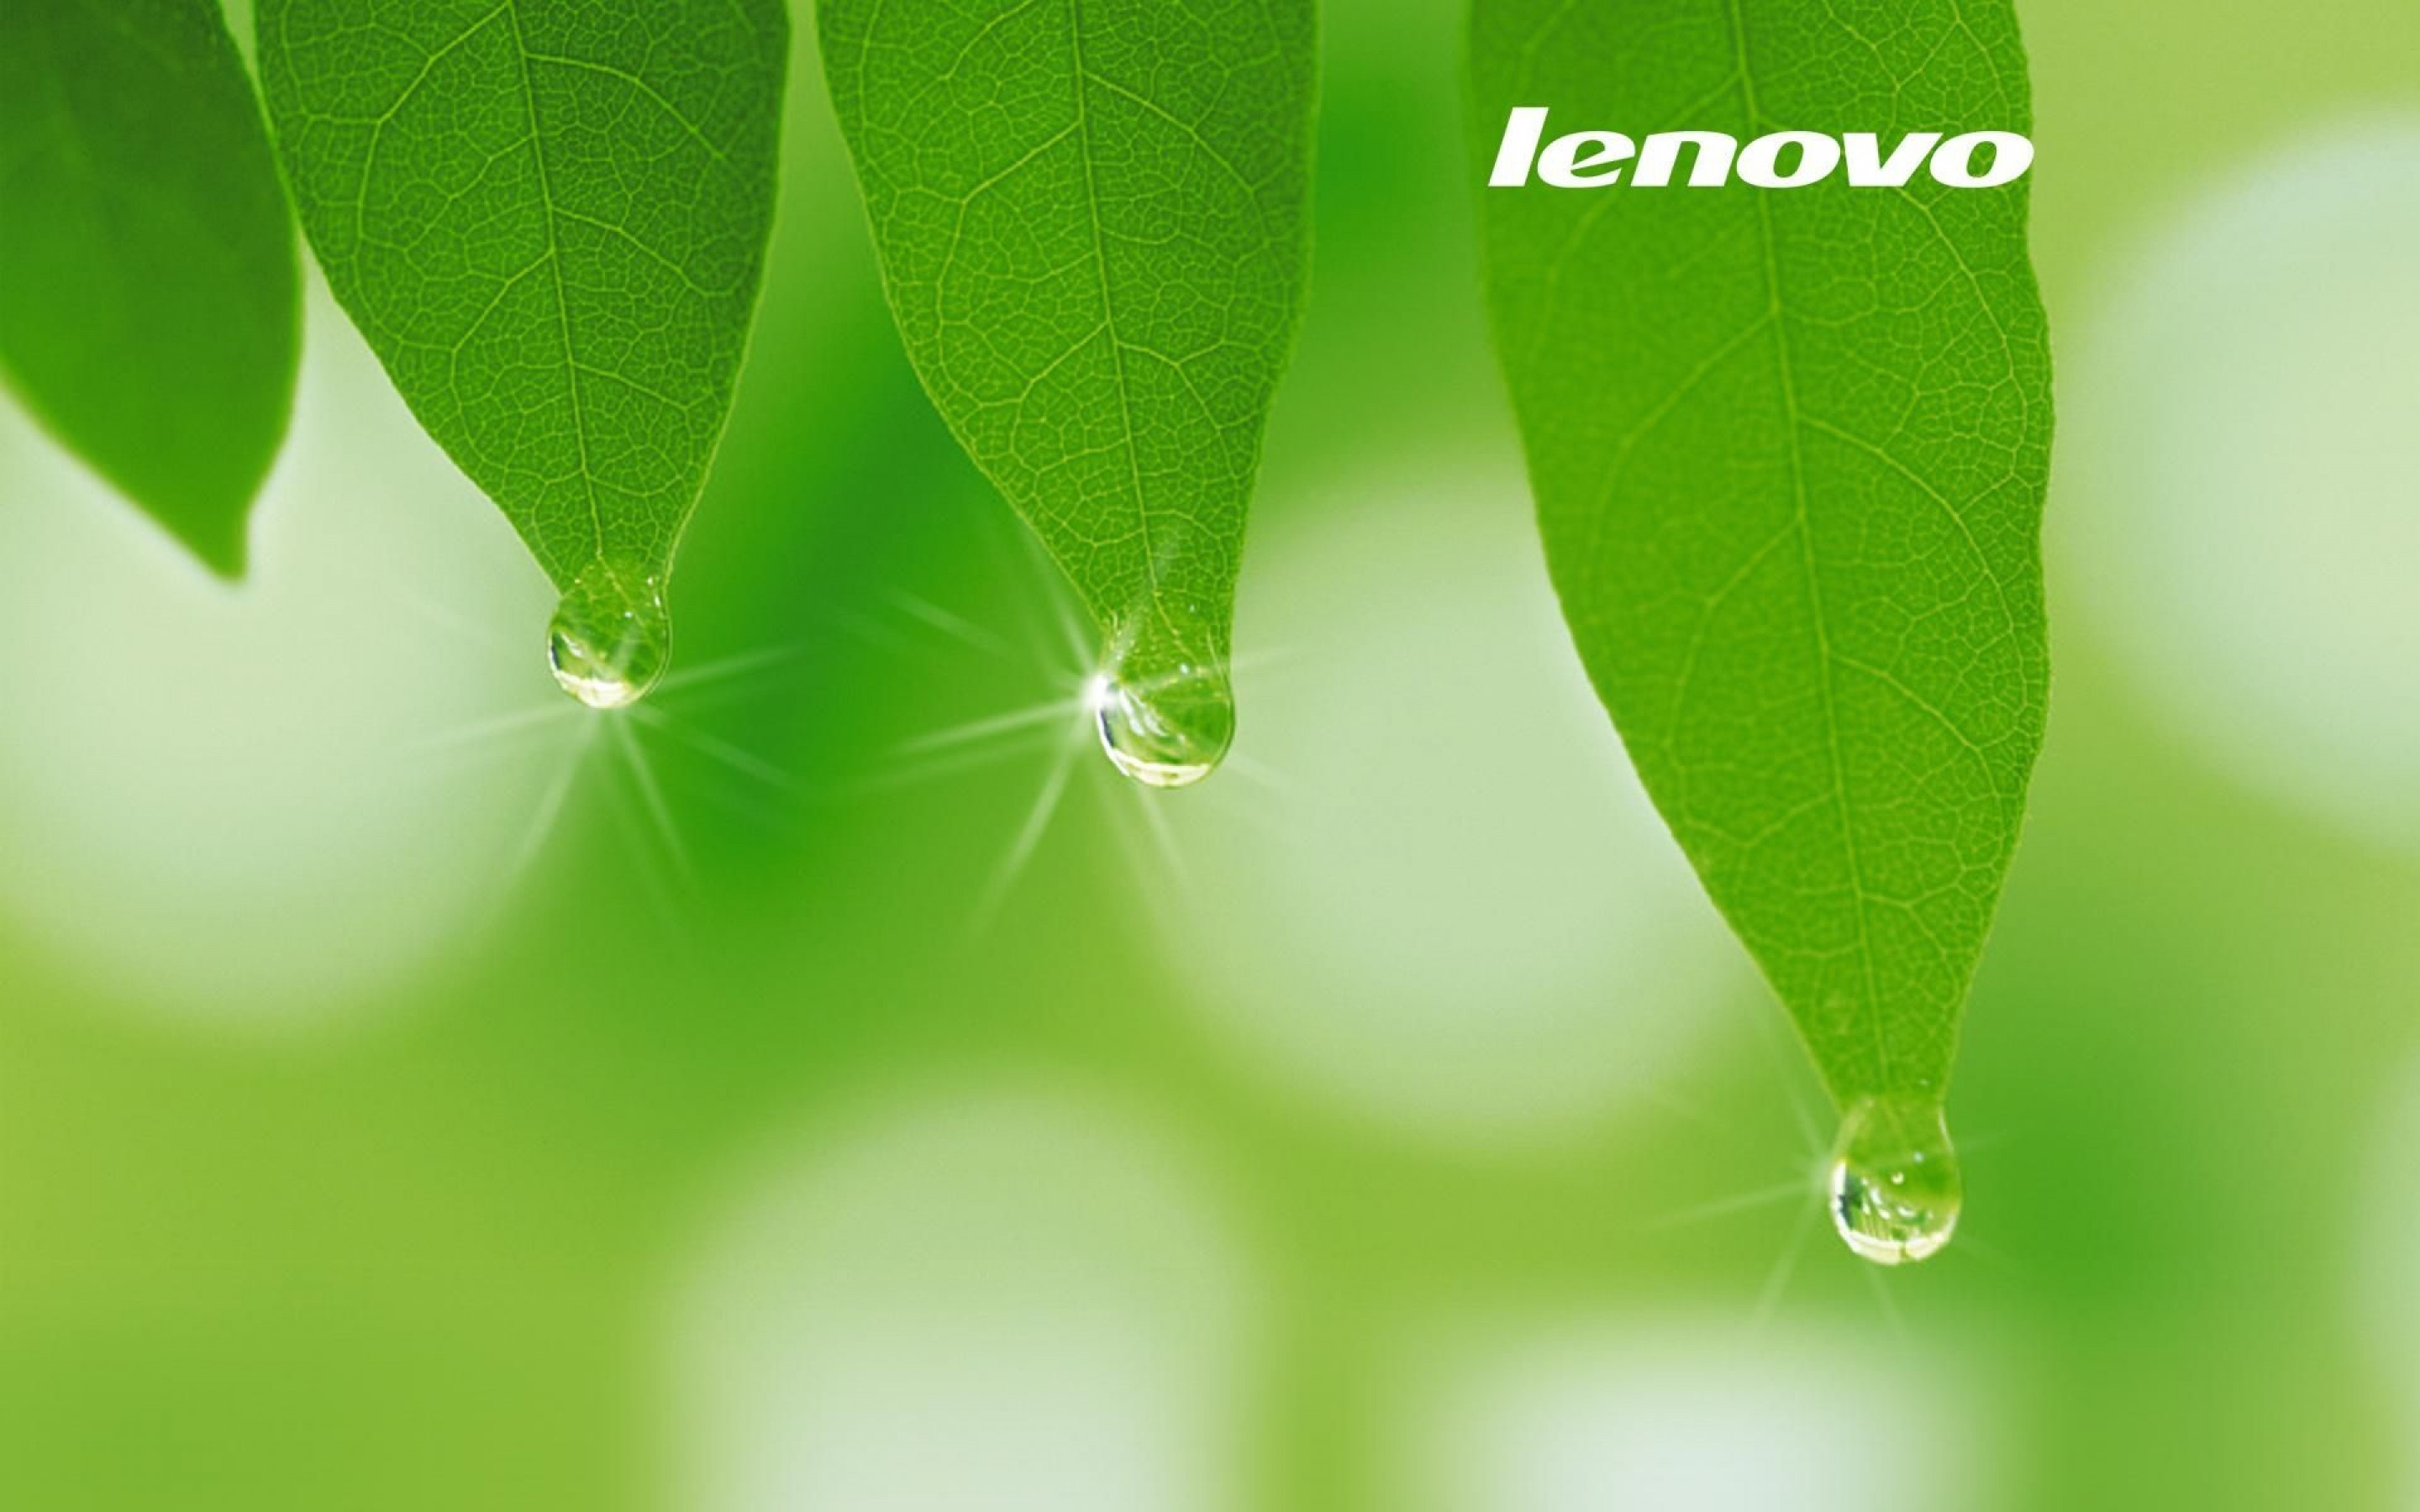 Lenovo Windows 8 Wallpapers